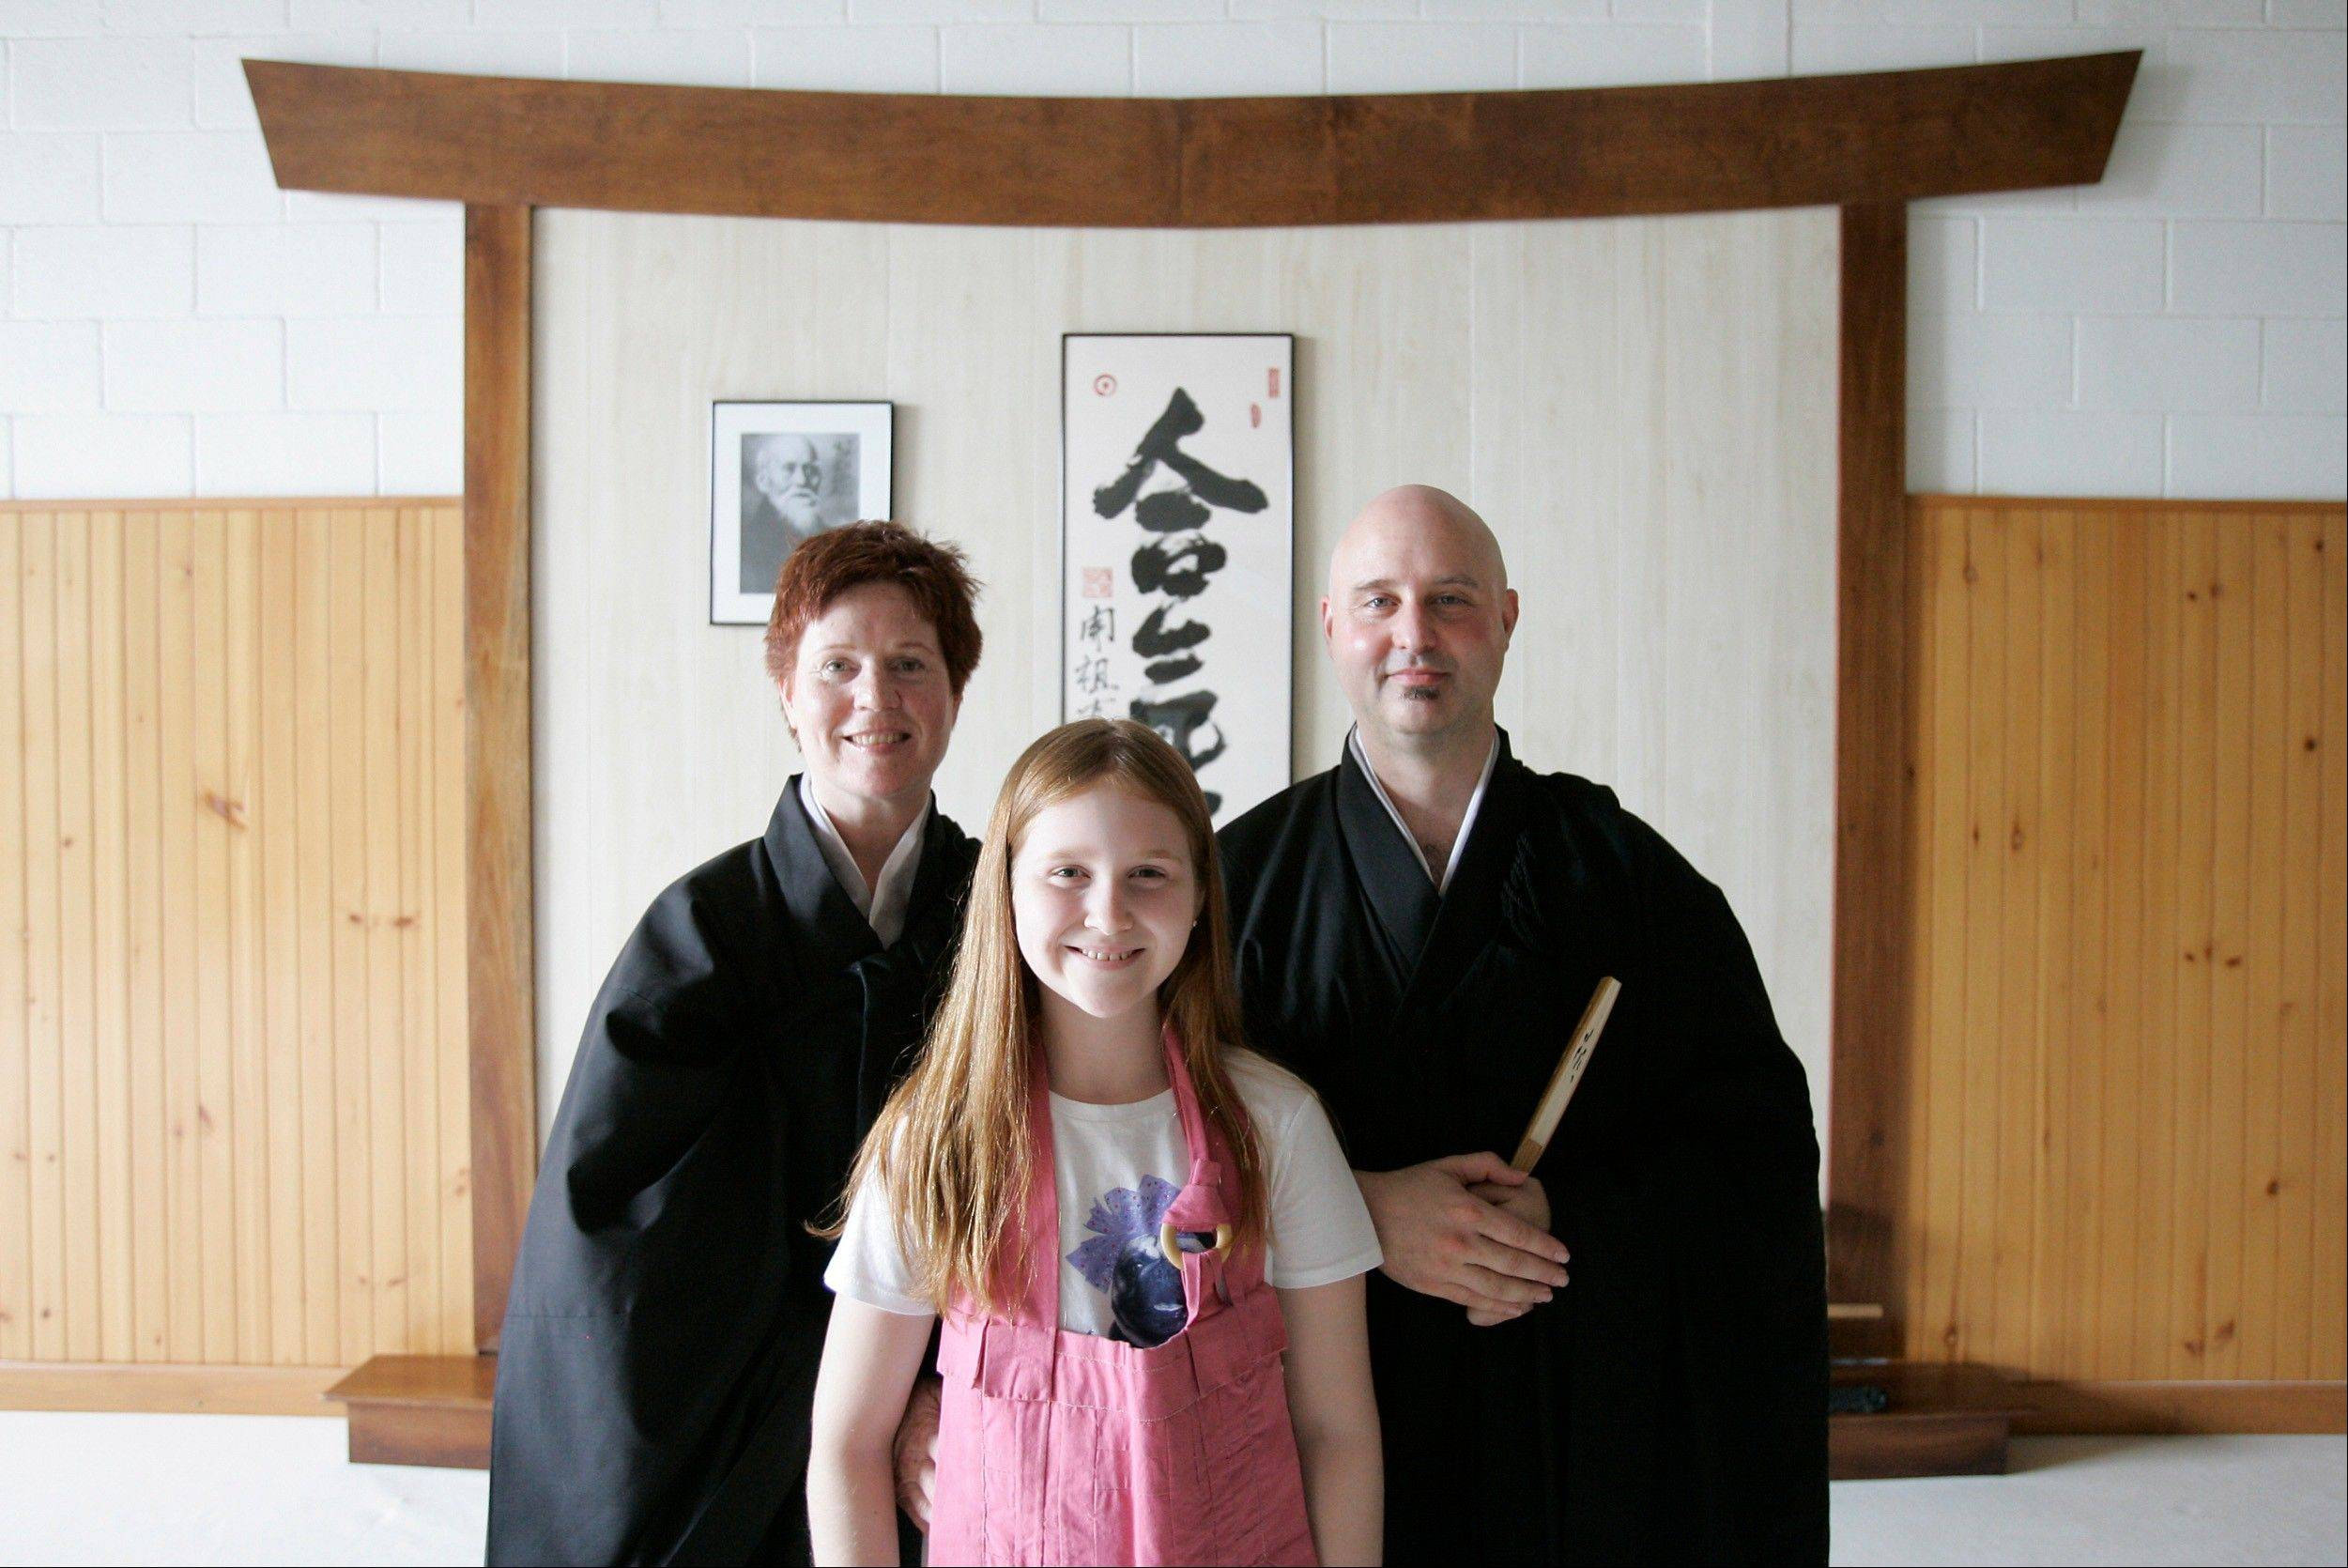 Rev. Karen Do-on Weik and her husband Rev. Jay Rinsen Weik with their daughter, Isabella Weik, 11, at the Toledo Zen Center in Holland, Ohio. Their center has created a Sunday school and other programs to be especially welcoming to families.